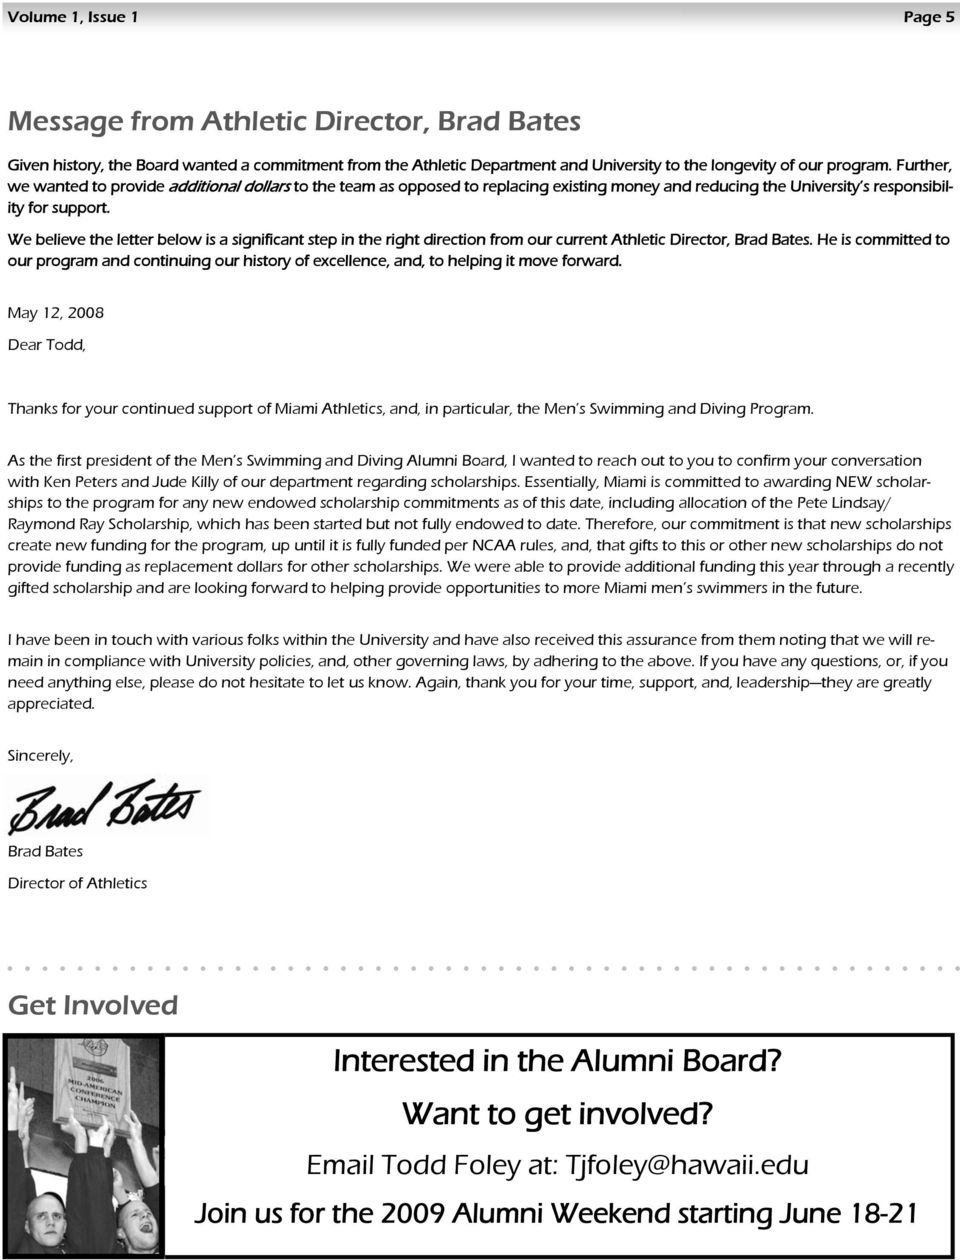 We believe the letter below is a significant step in the right direction from our current Athletic Director, Brad Bates.